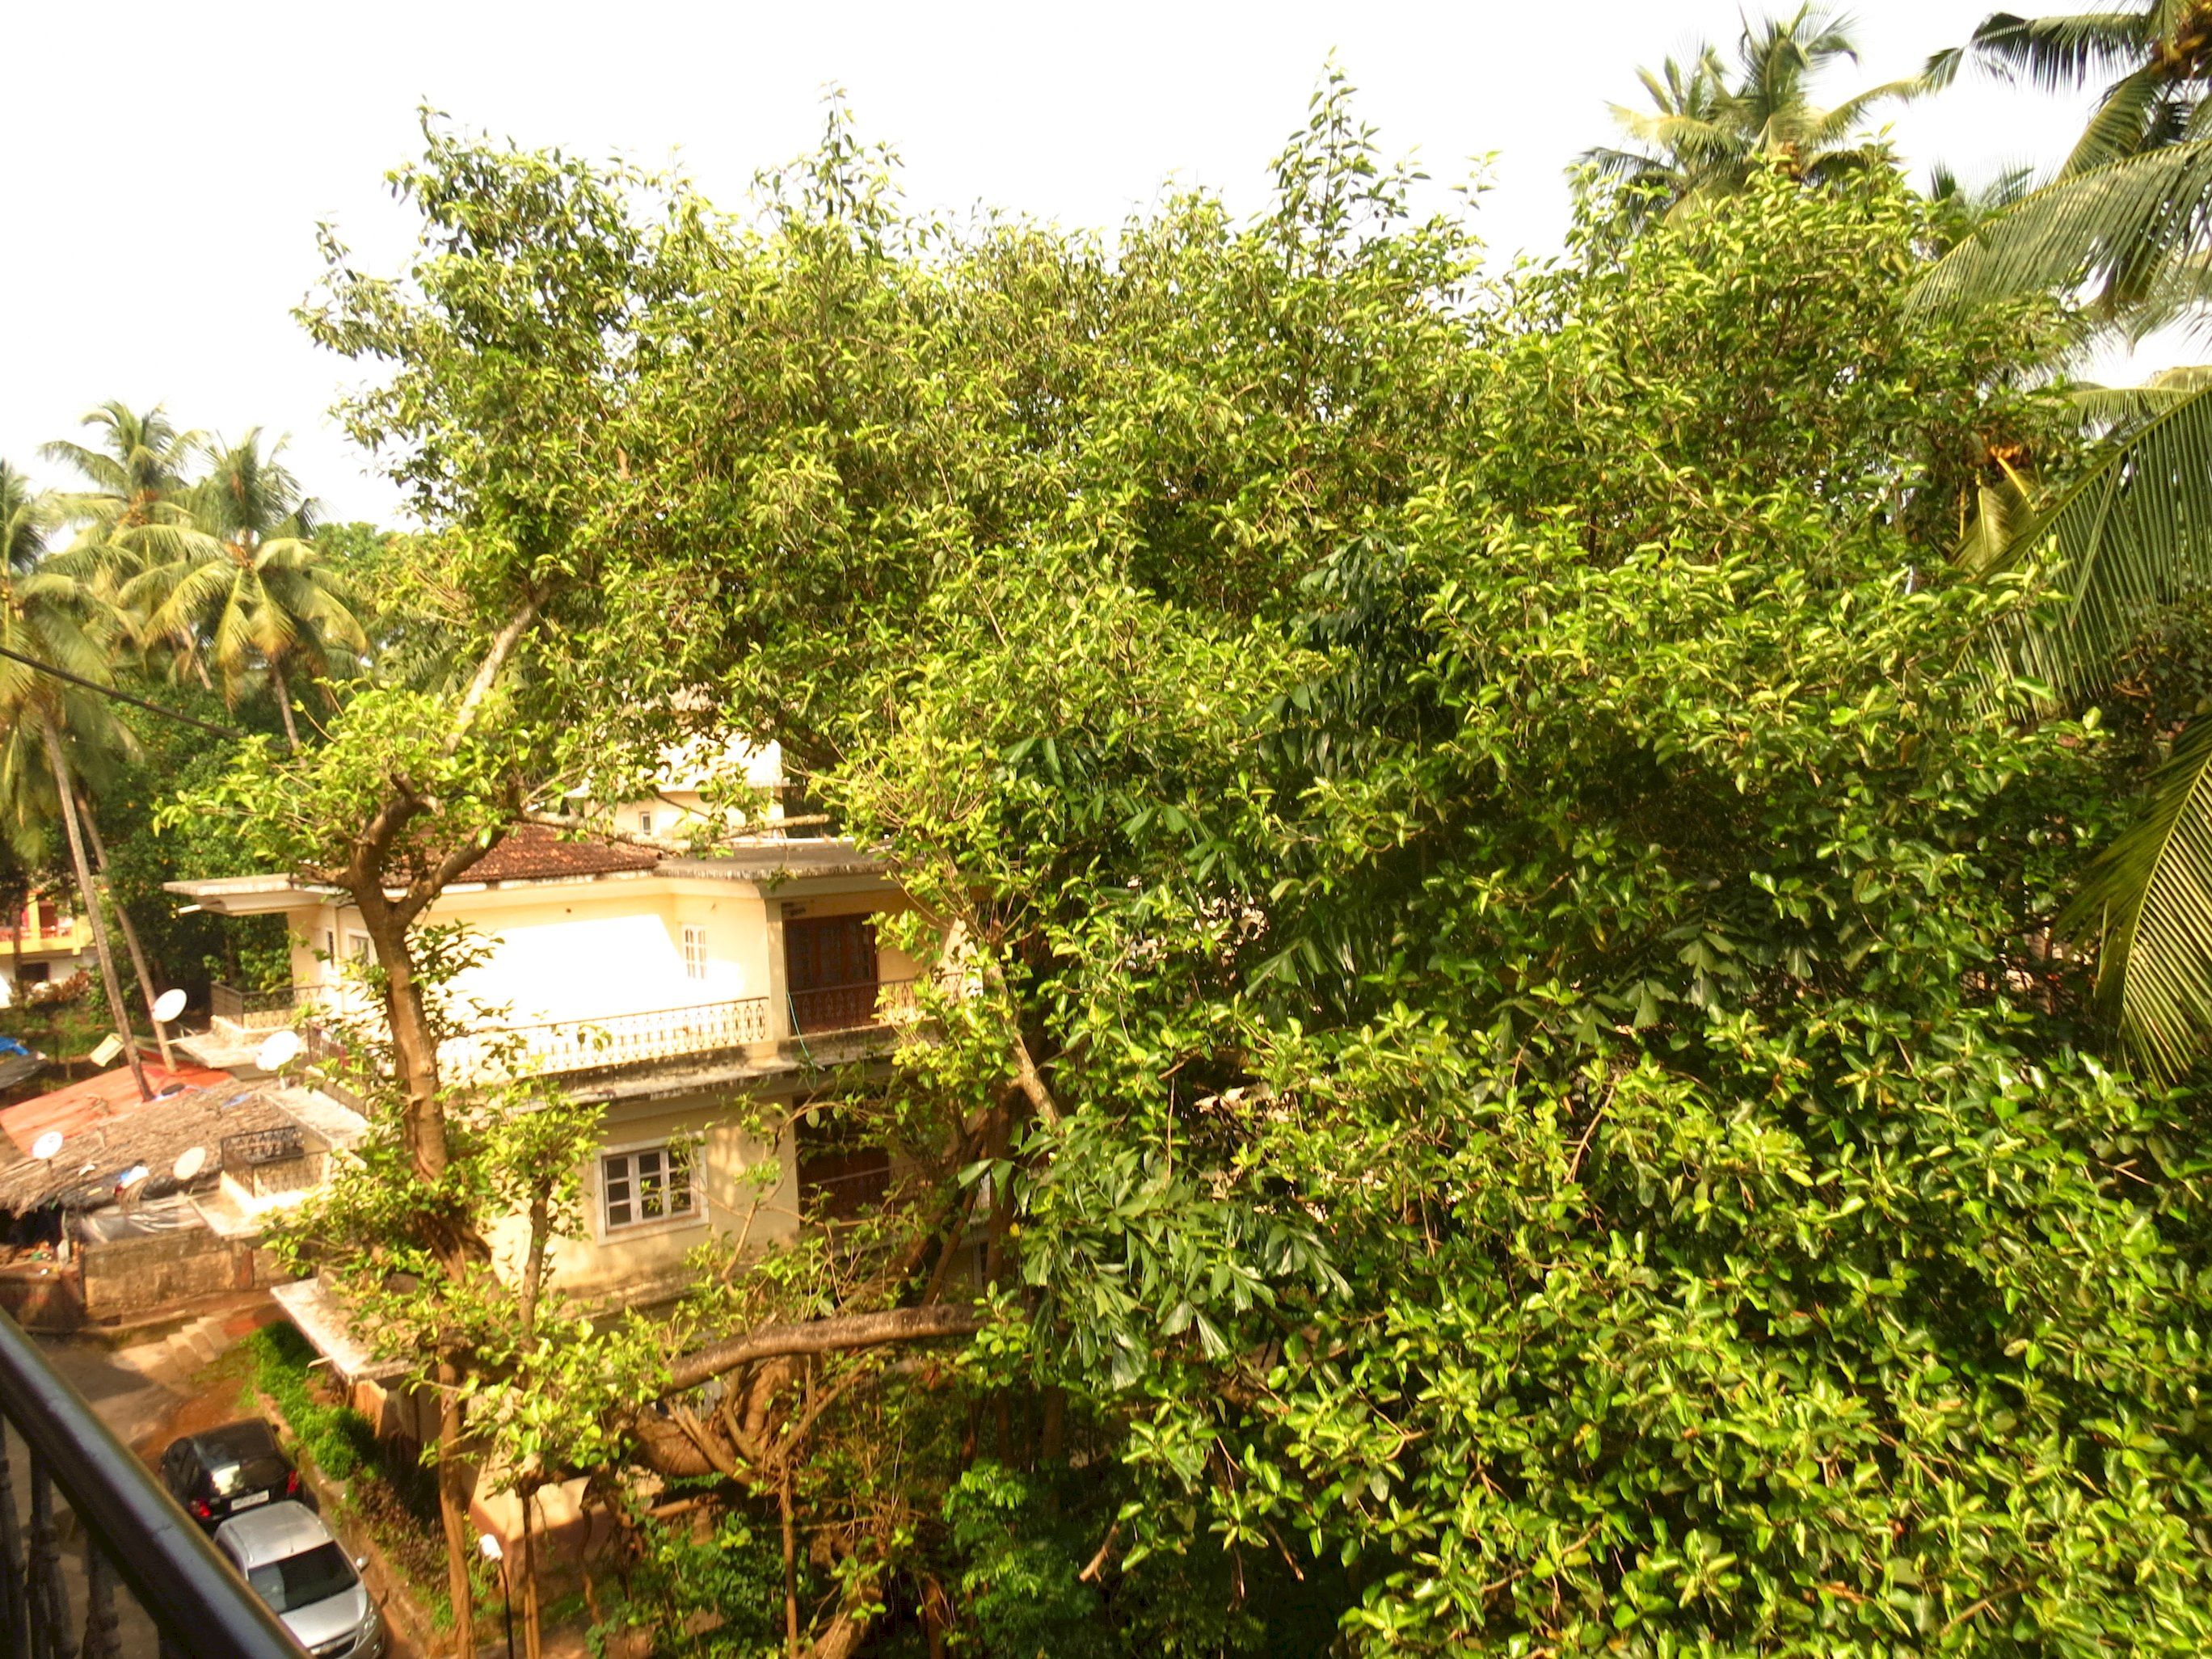 Apartment 37  Central Calangute Serviced Apartment   WiFi photo 20413585